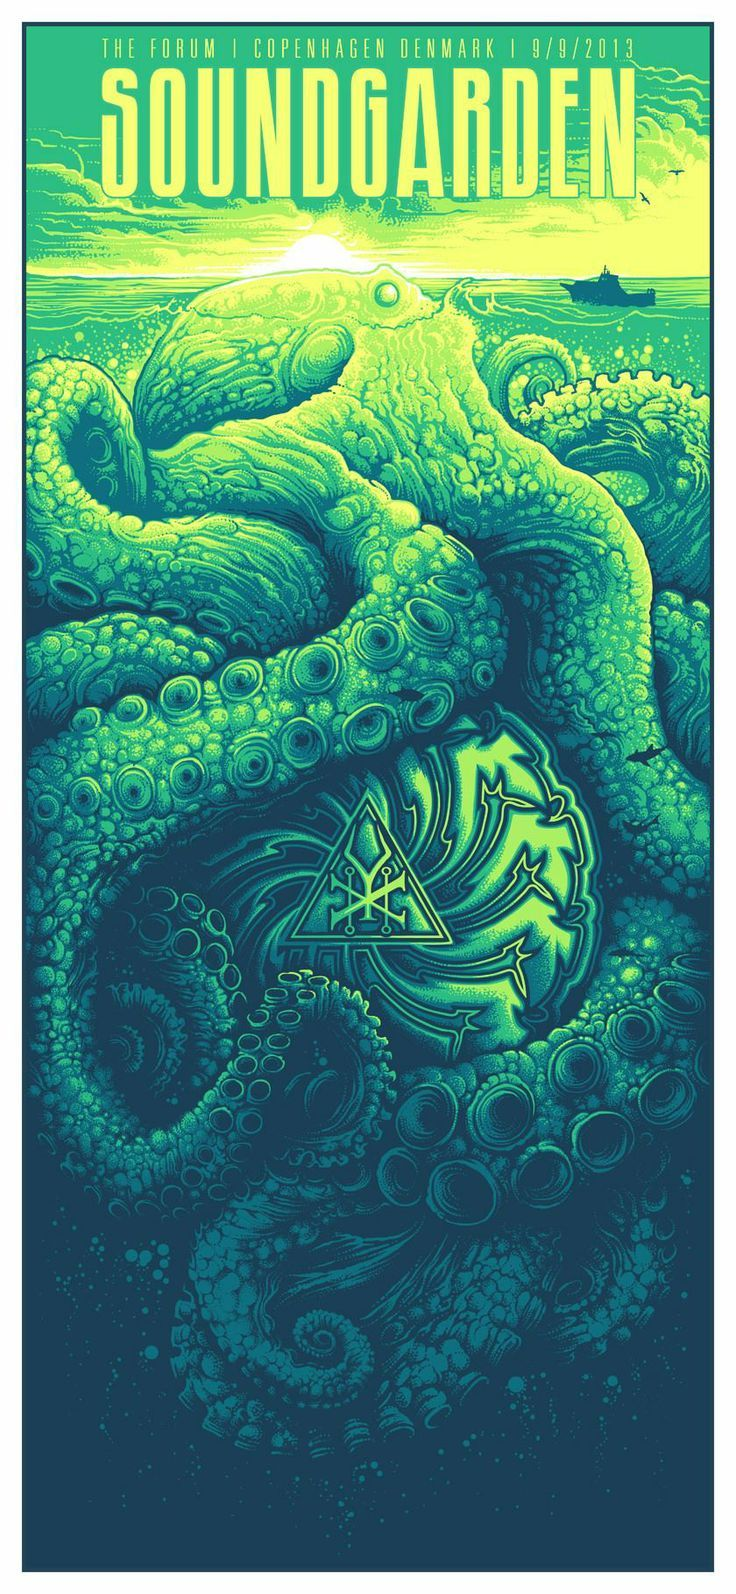 35 Stunning Gig Poster Designs | From up North. This Soundgarden Poster Rules.